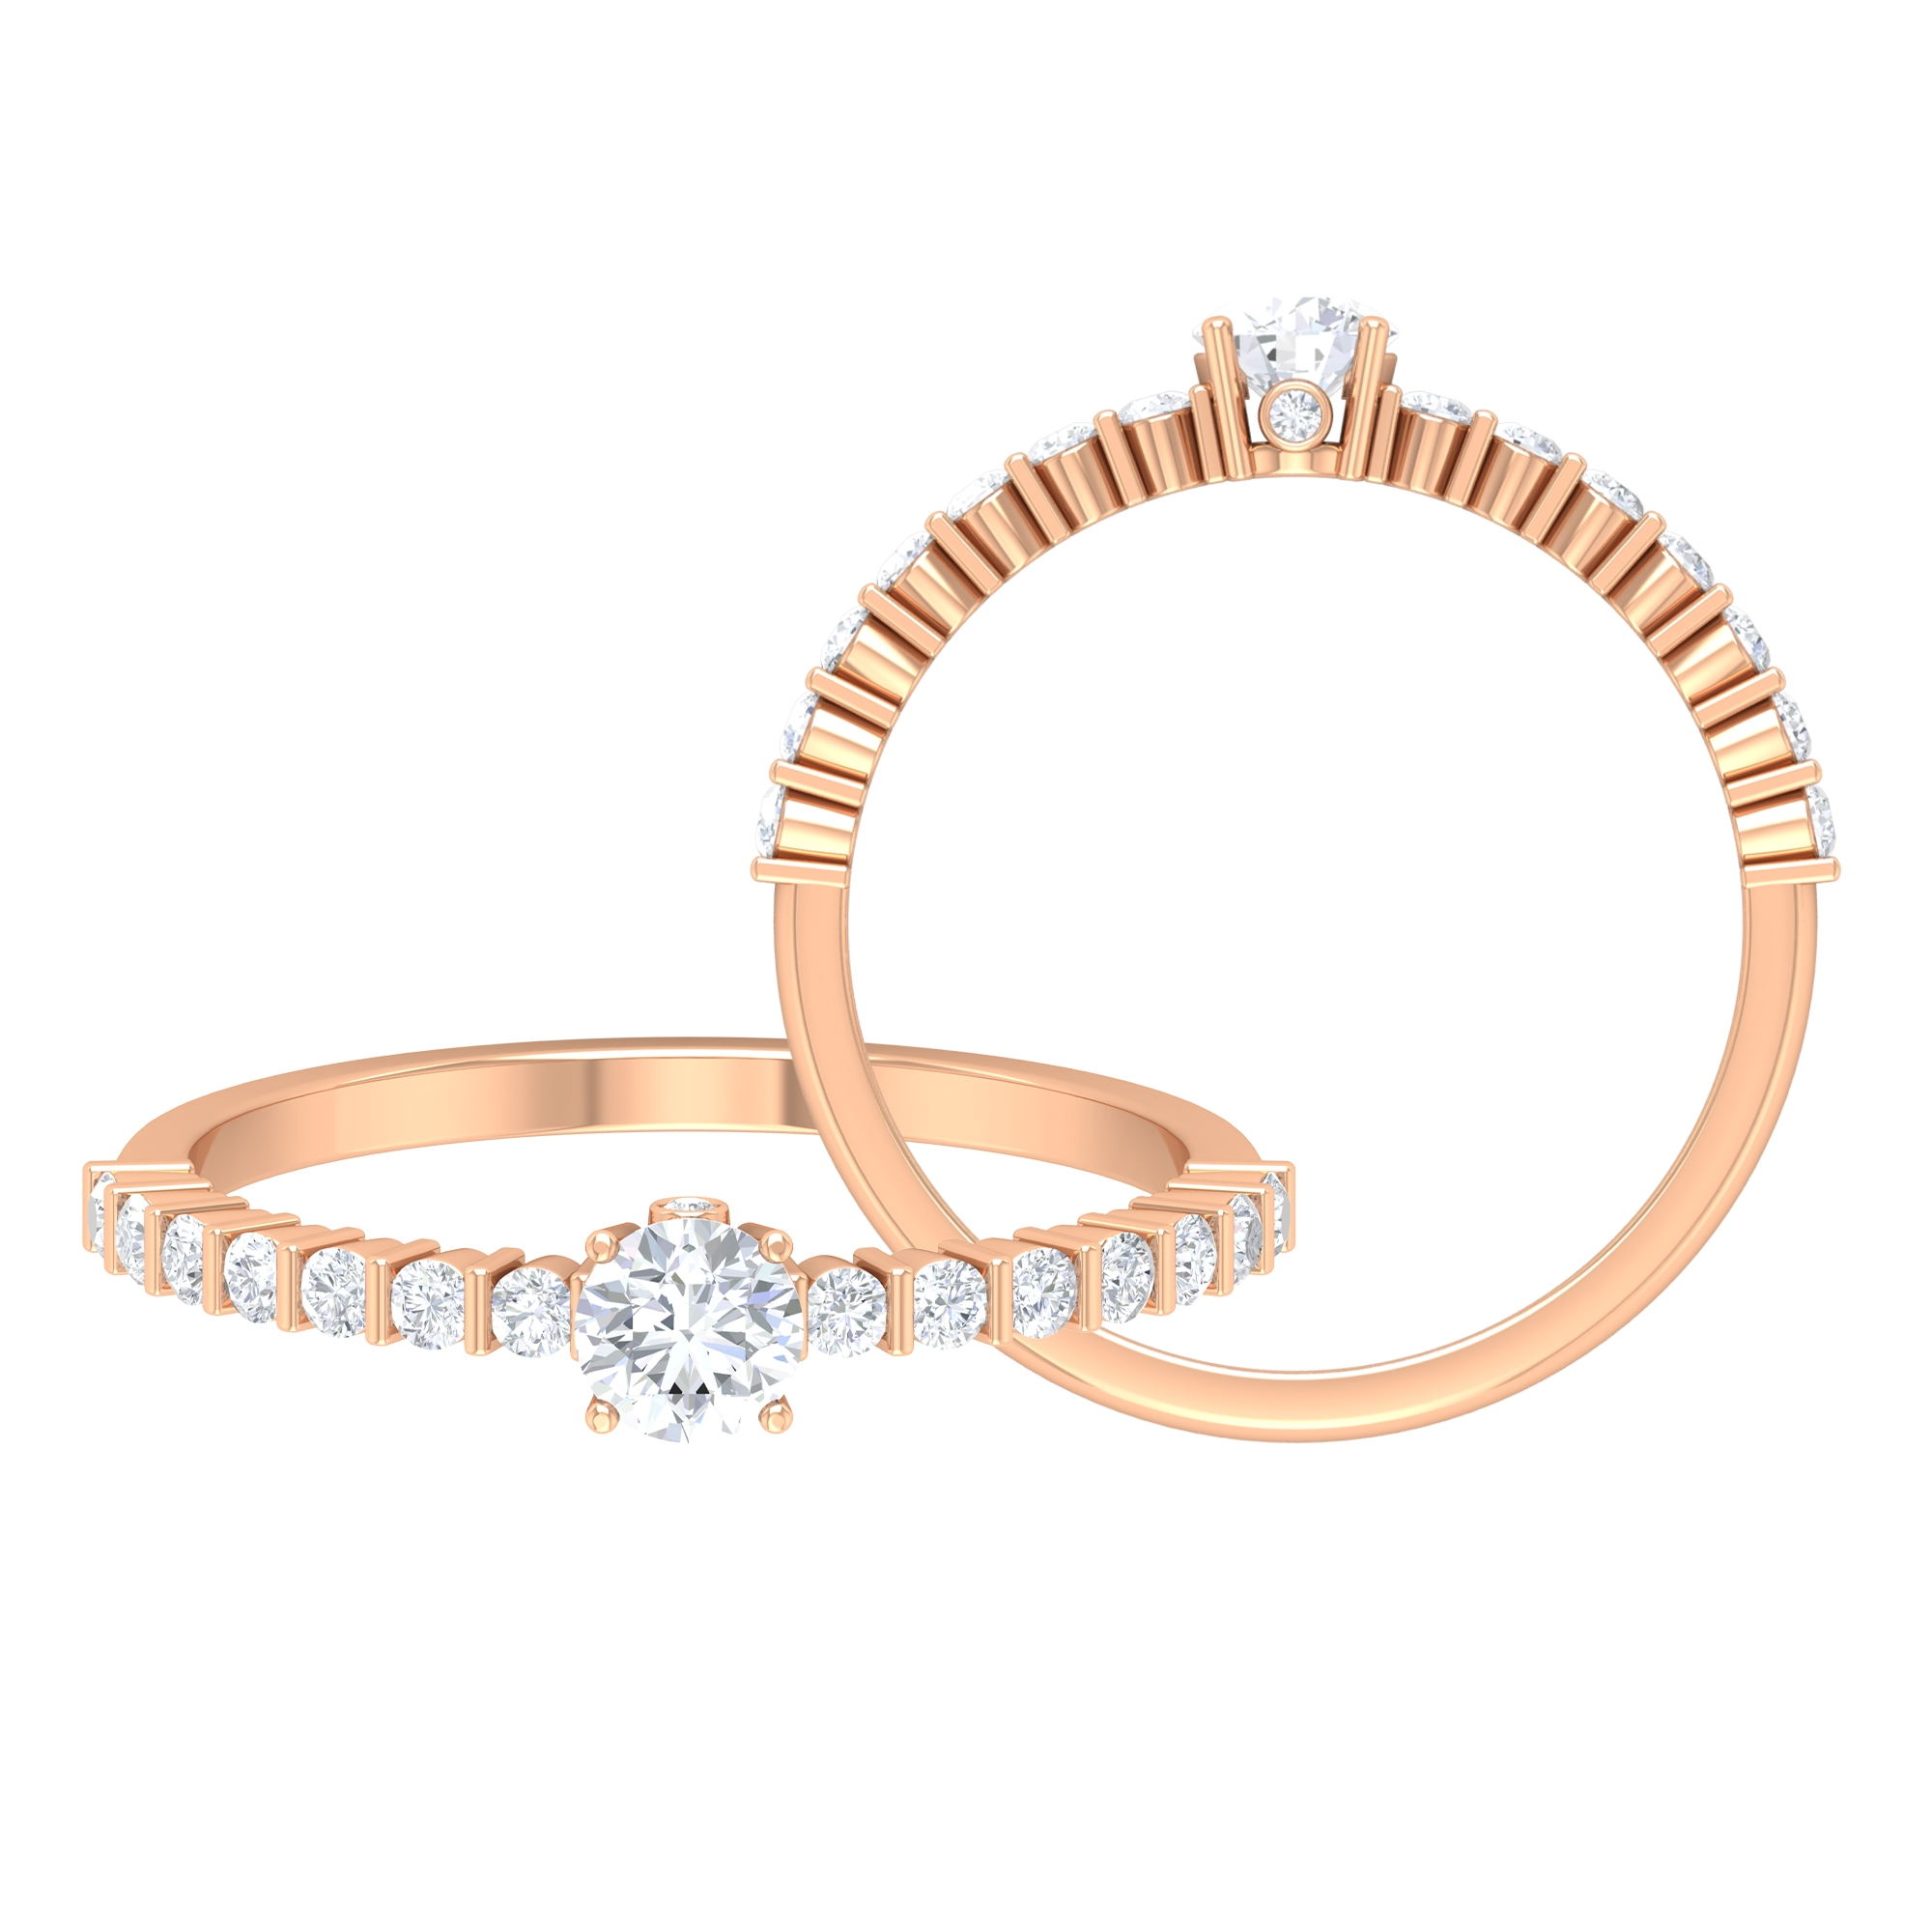 1/2 CT Round Cut Solitaire and Surprise Diamond Ring with Bar Set Side Stones